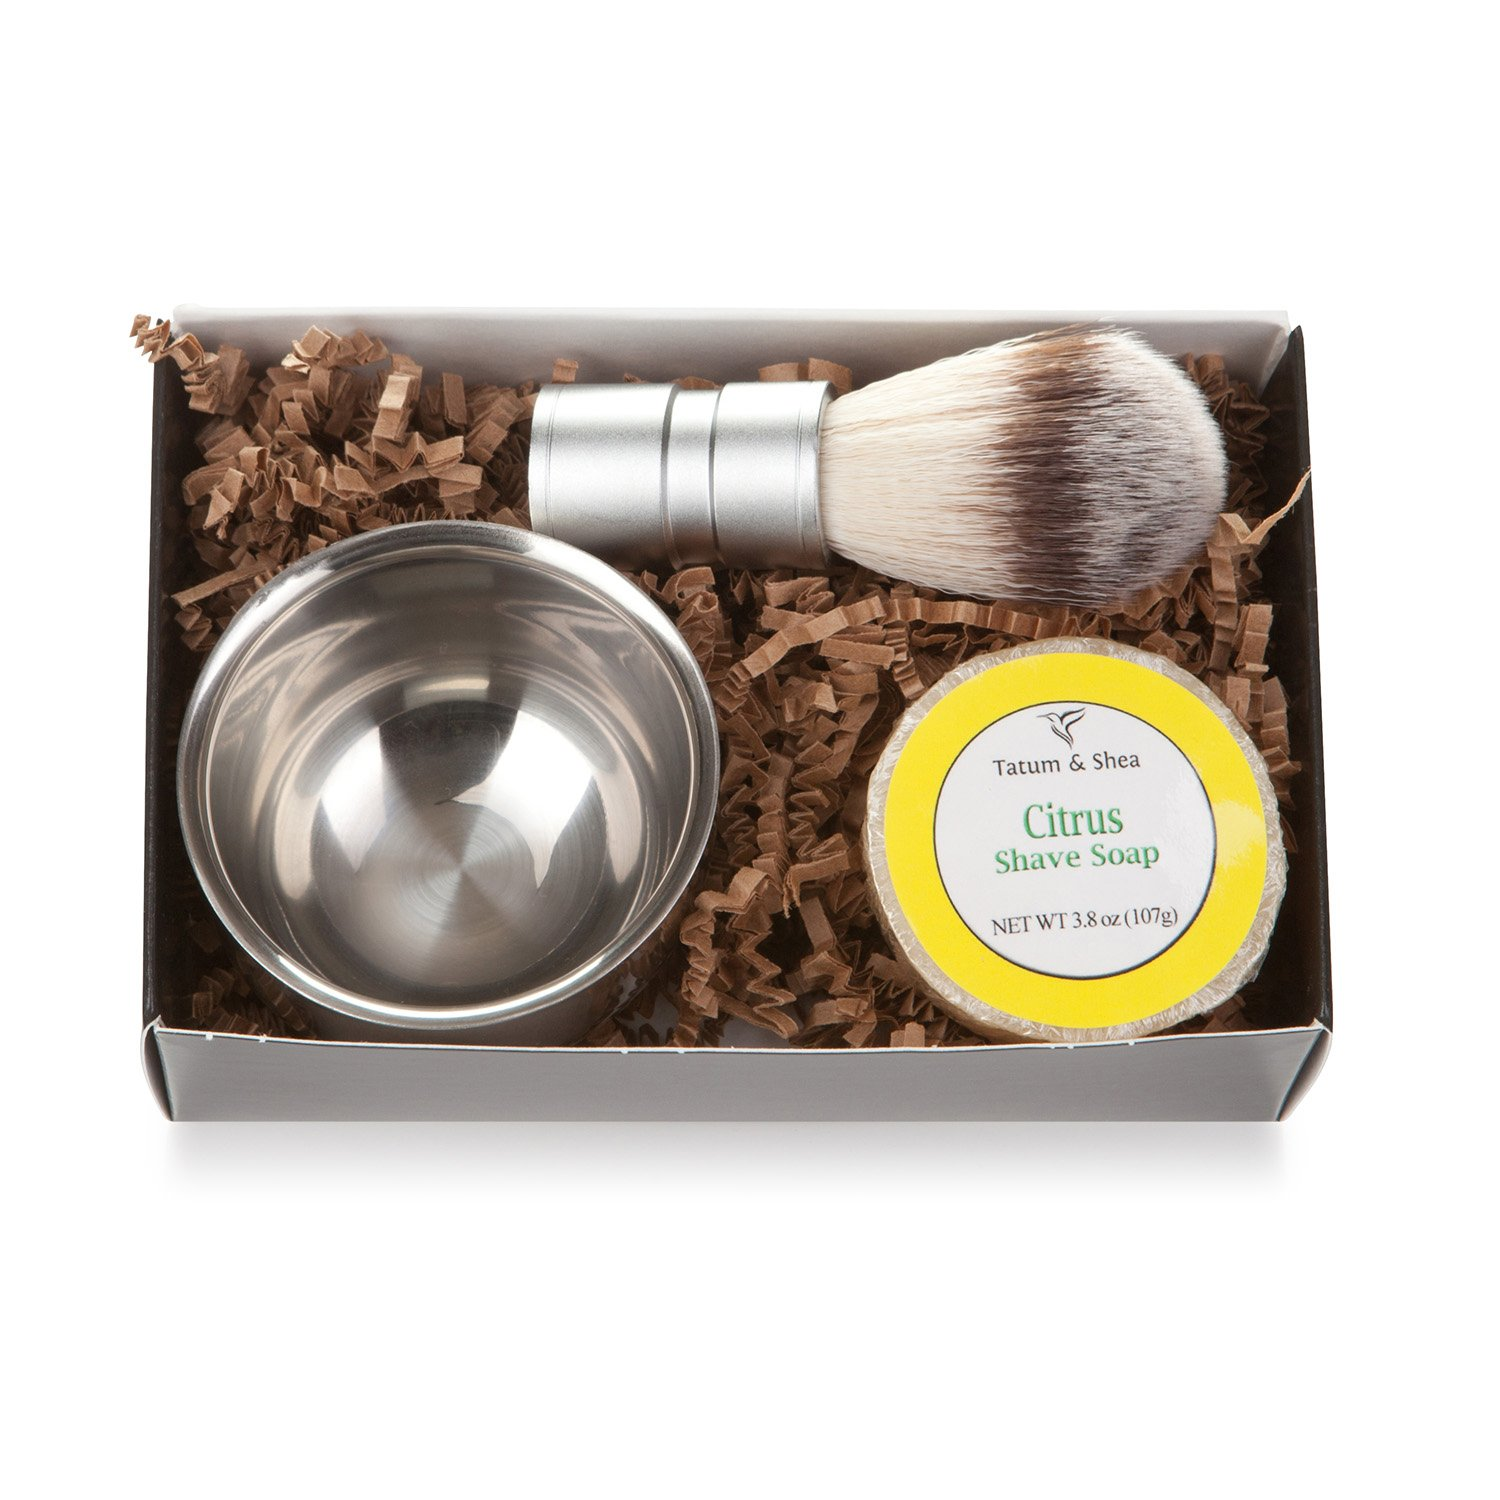 Men's Shaving Kit: 3-Piece Shaving Soap Gift Set with Ultra Rich Soap, Stainless Steel Shave Bowl & Easy-Grip Brush, Light Barber Shop Scent, Handsomely Gift Boxed by Tatum & Shea Grandy Goods